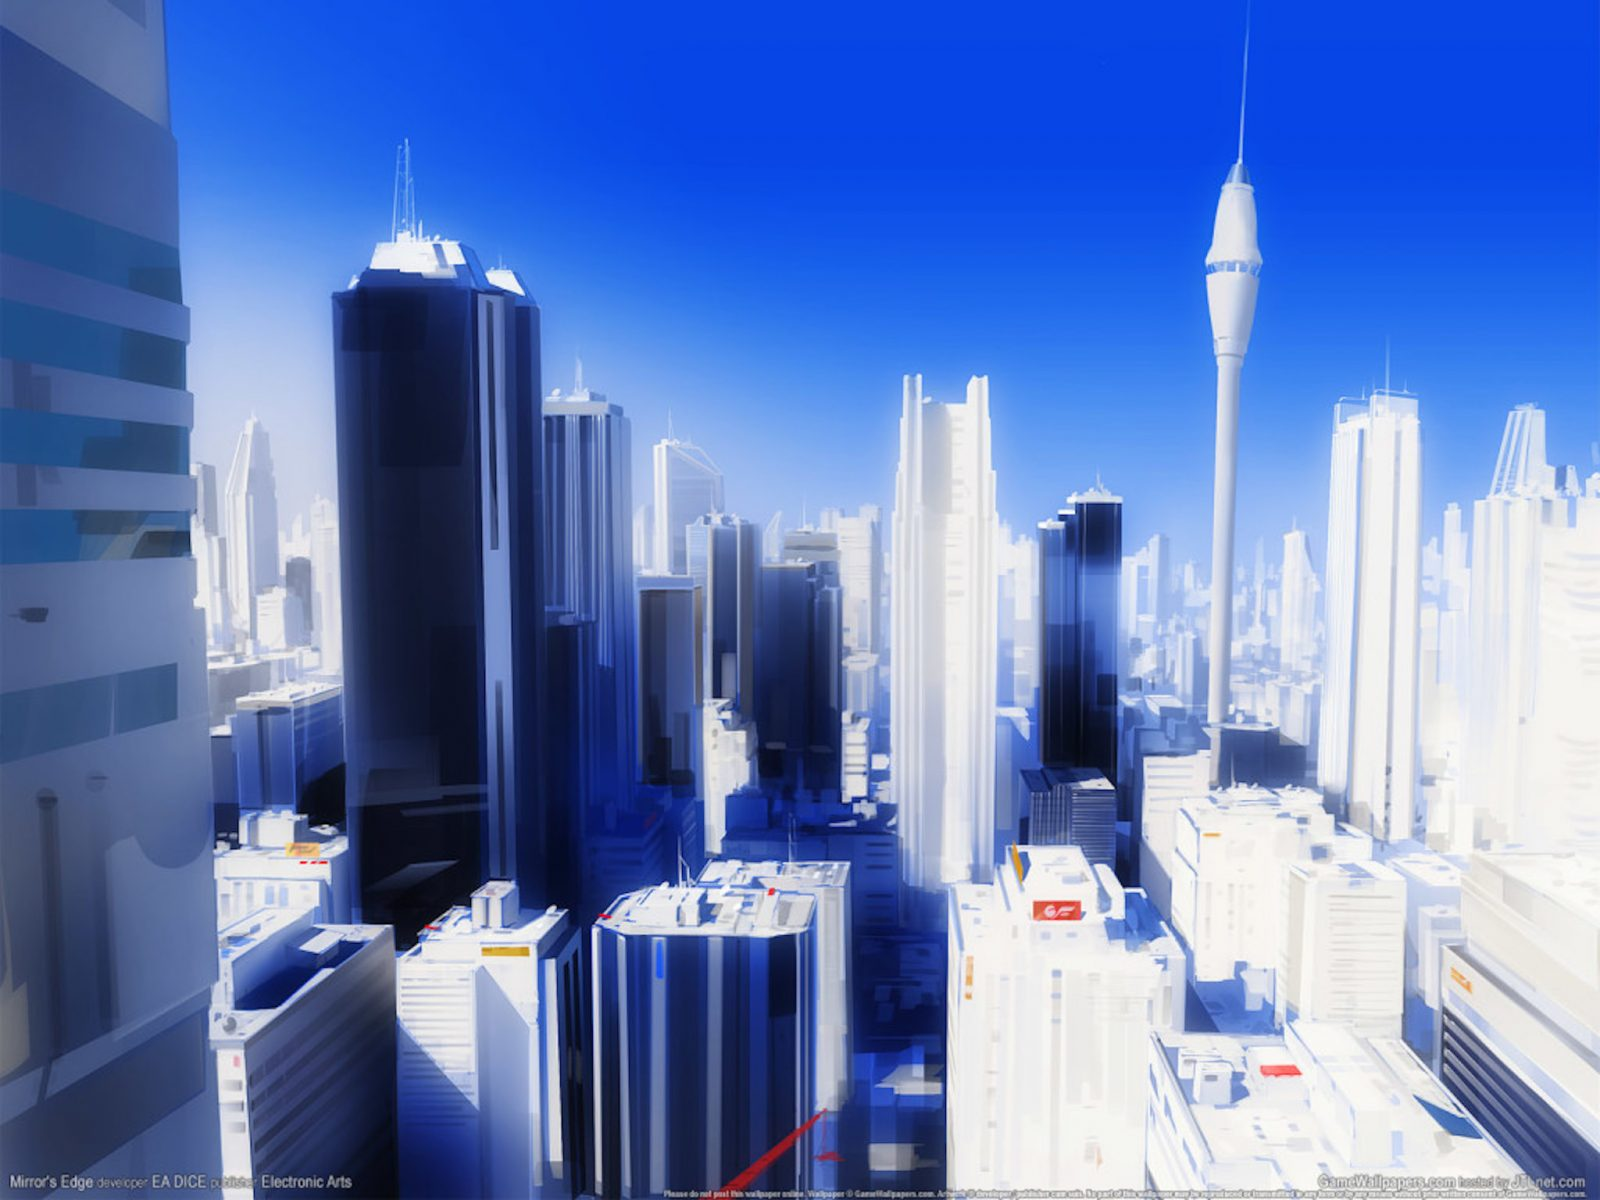 Mirror's Edge Glass City Wallpaper   Free Gaming Images